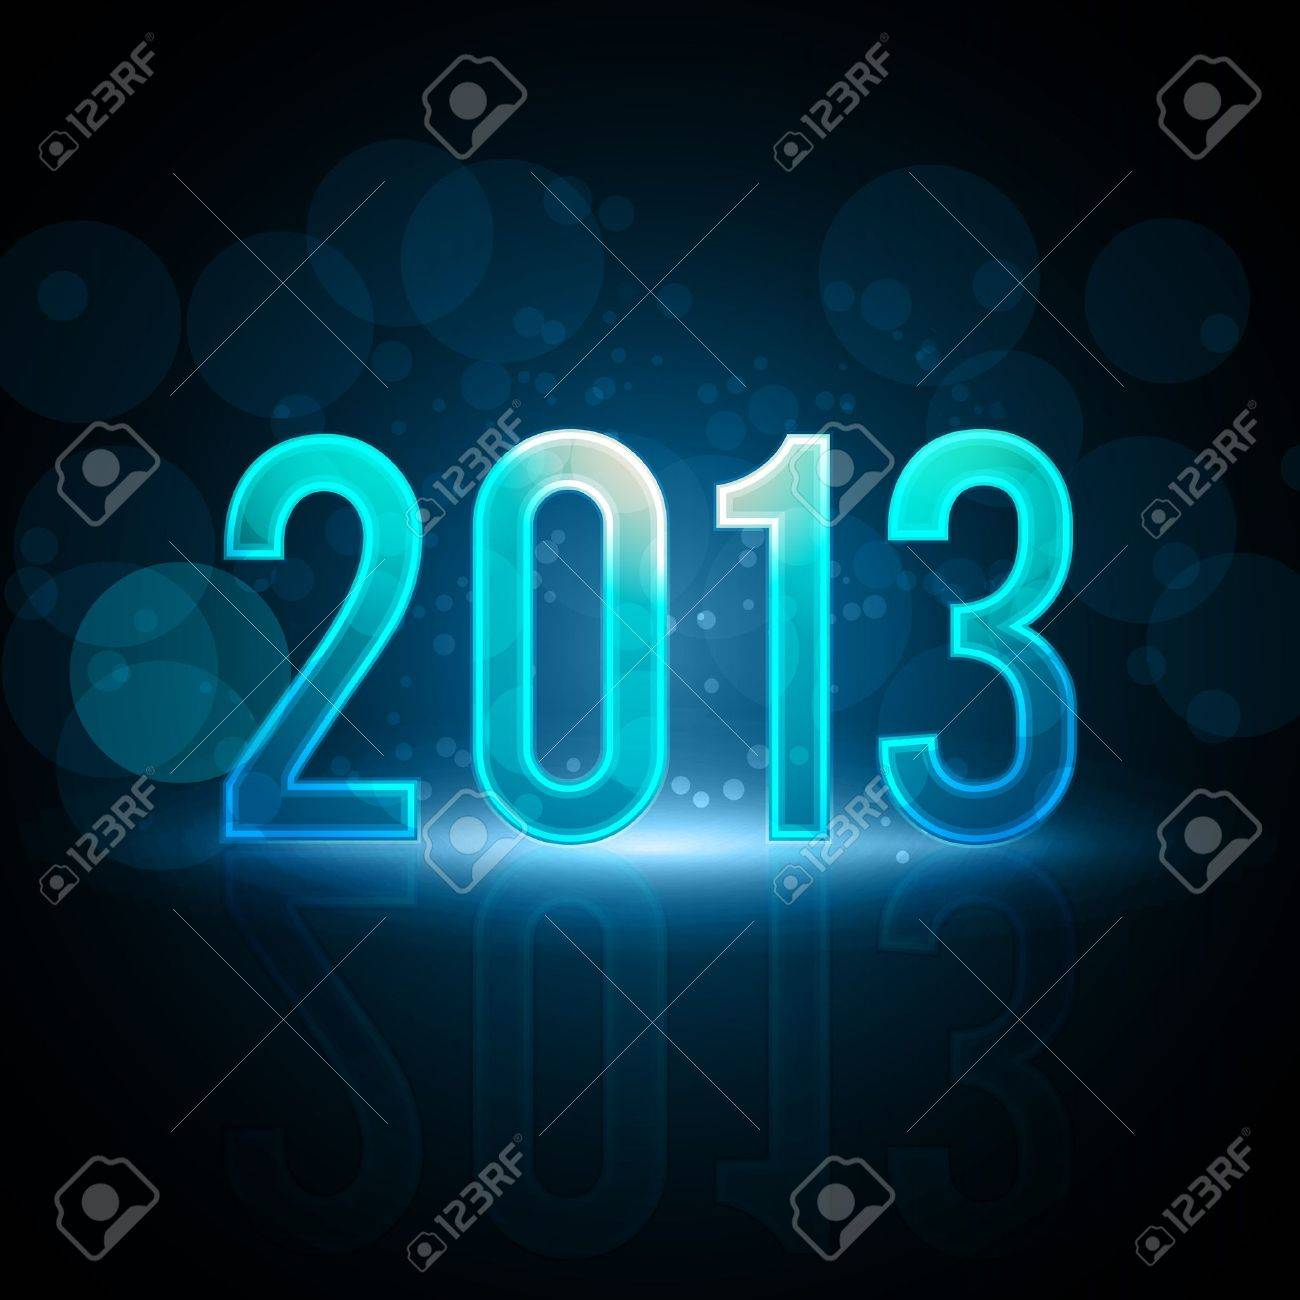 Happy New Year 2013 Message Neon Background Stock Vector - 15282661